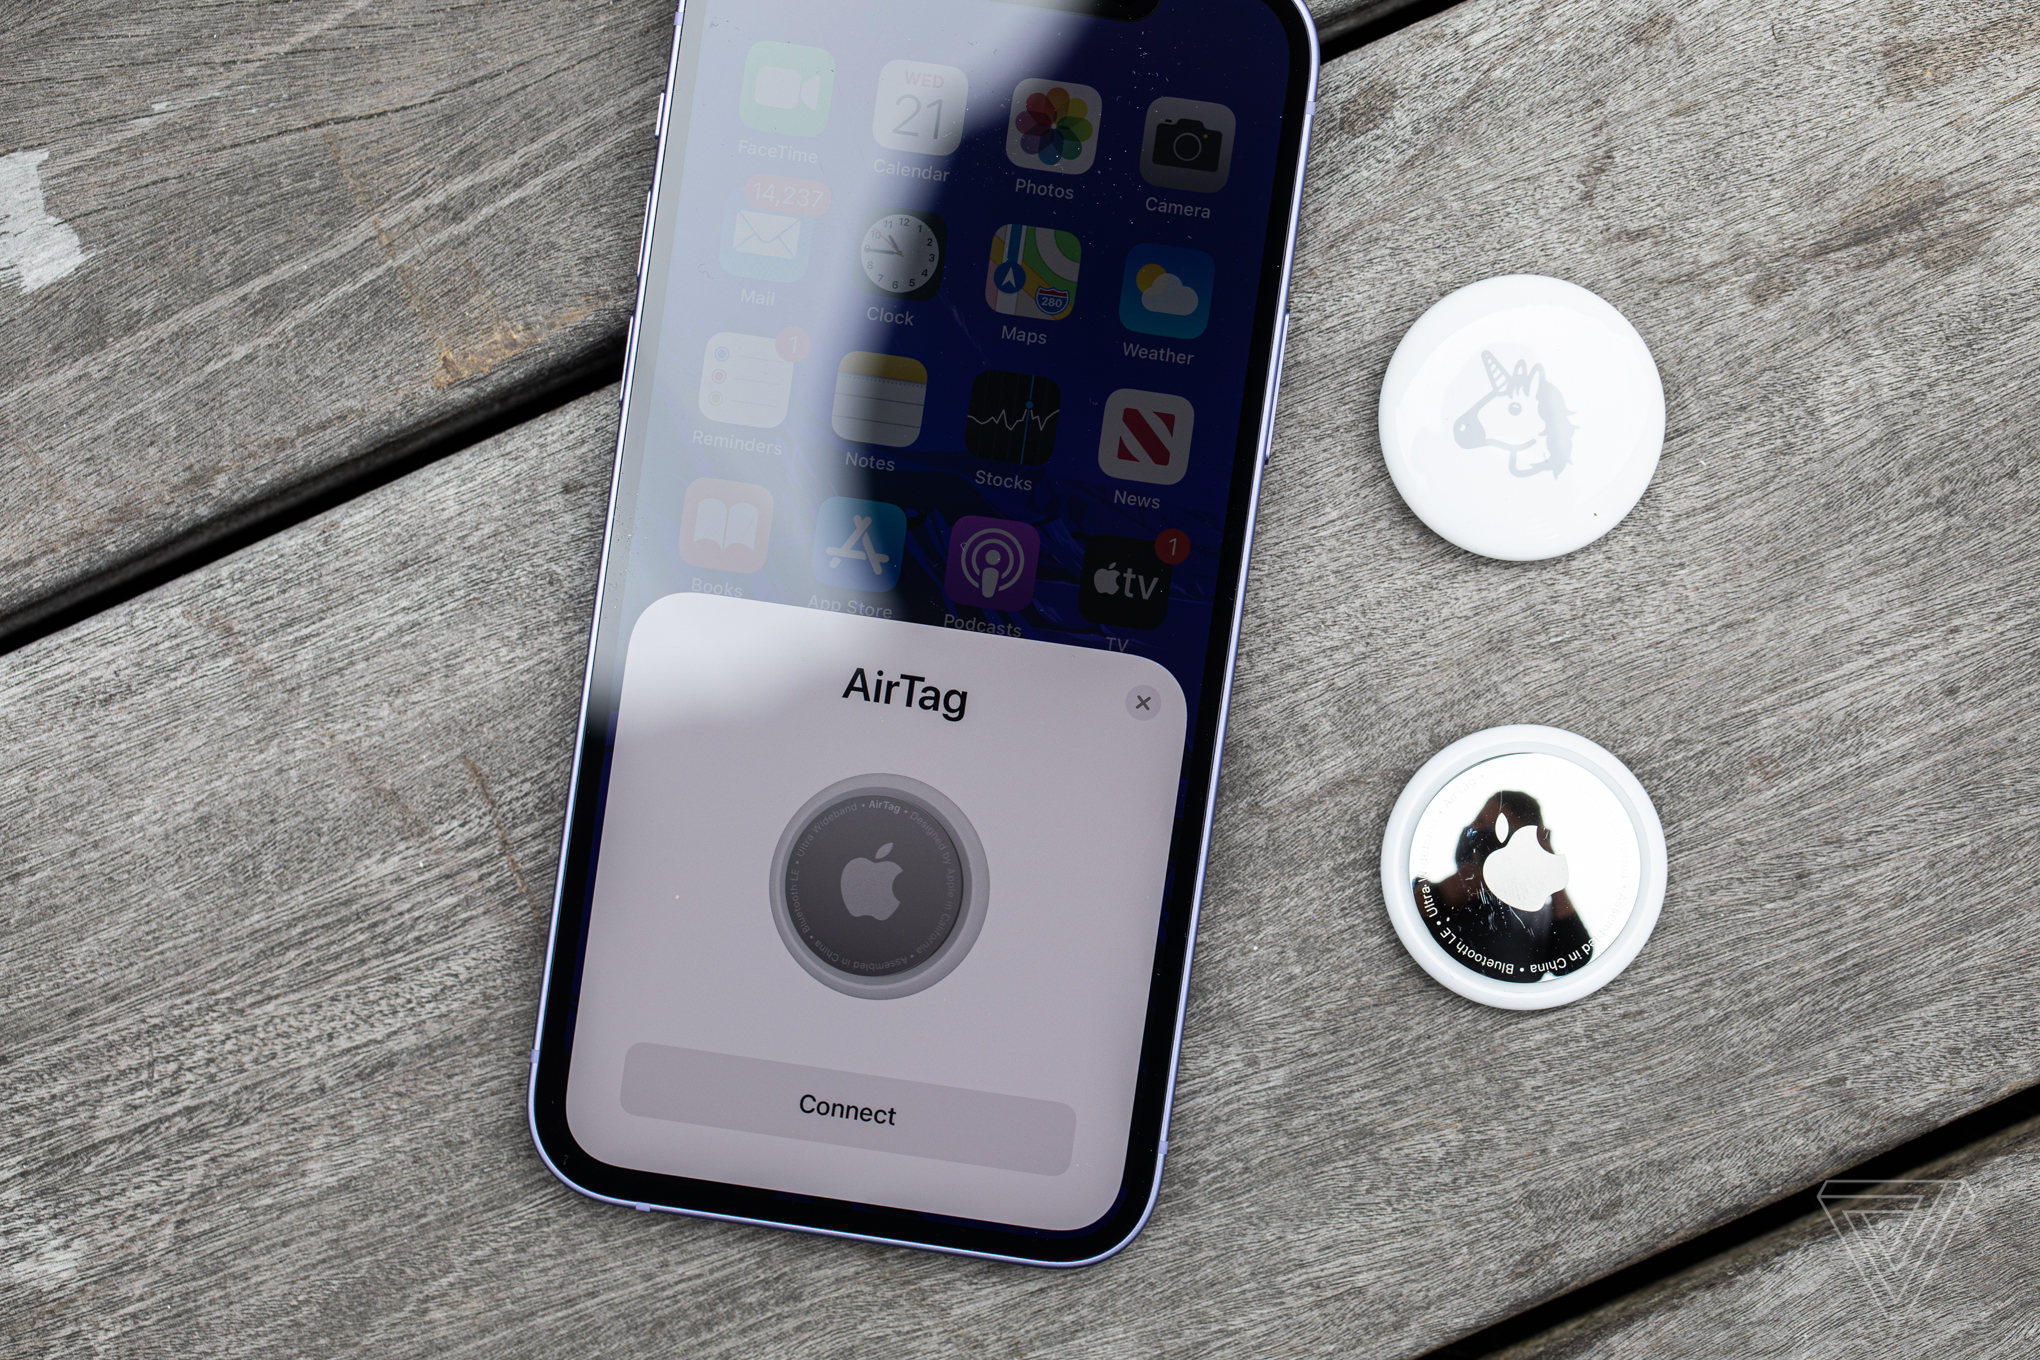 airtag and iphone 12